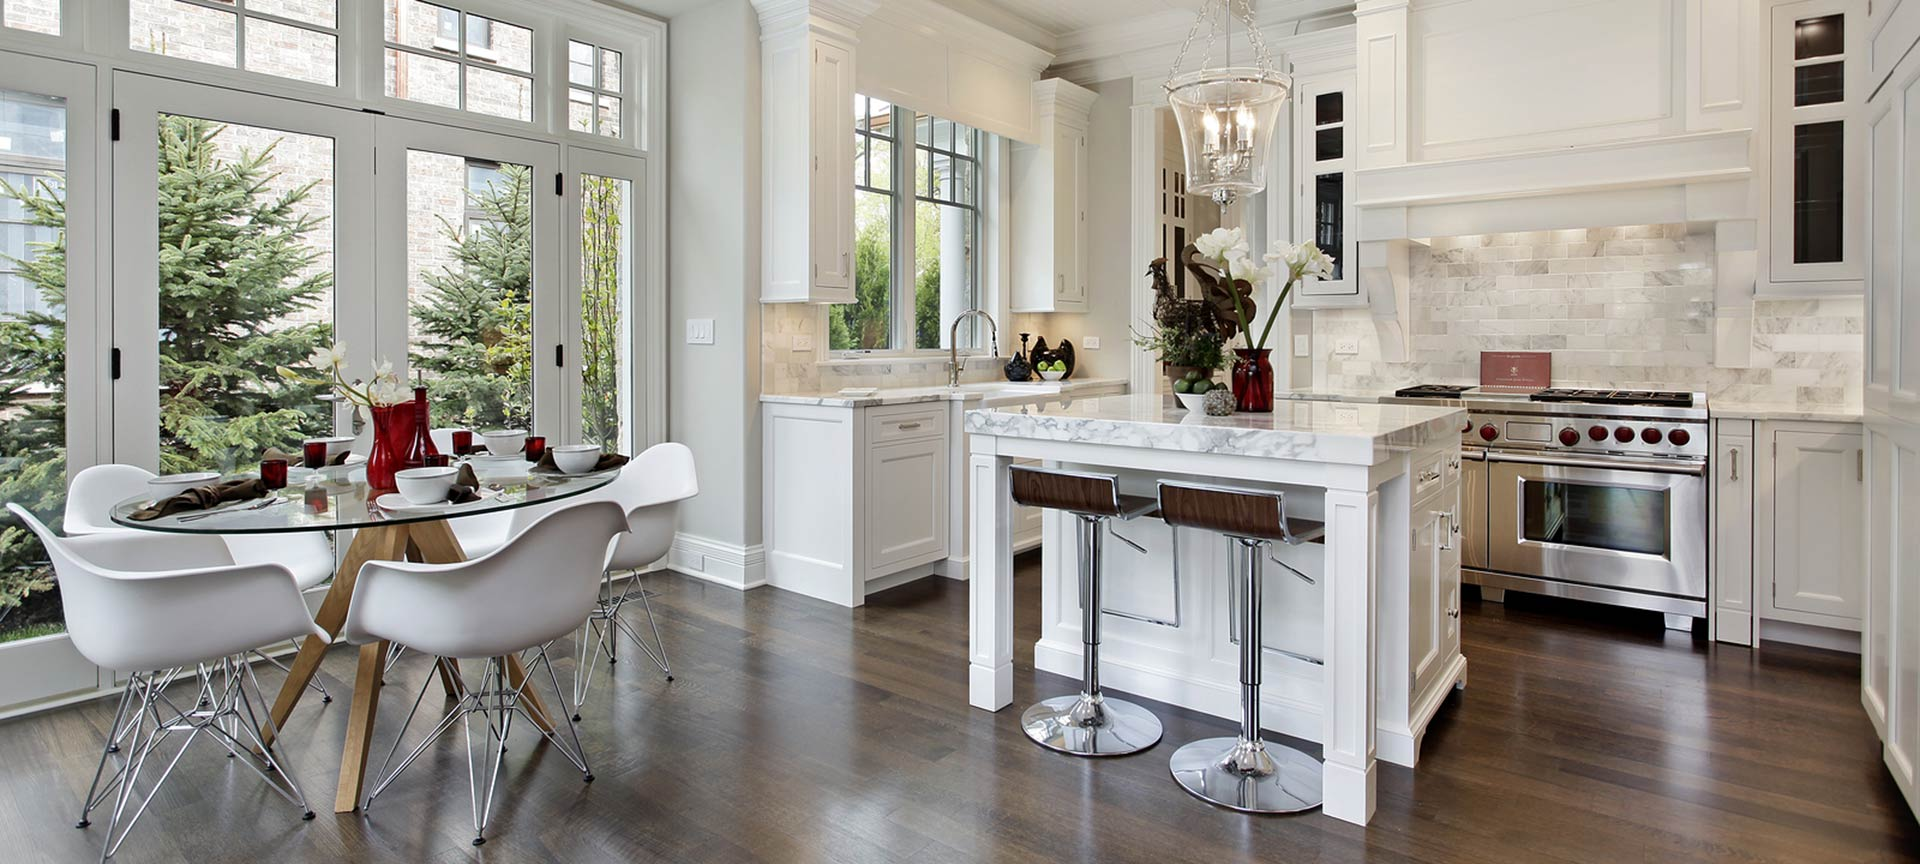 How Much Does Kitchen Remodeling Cost?